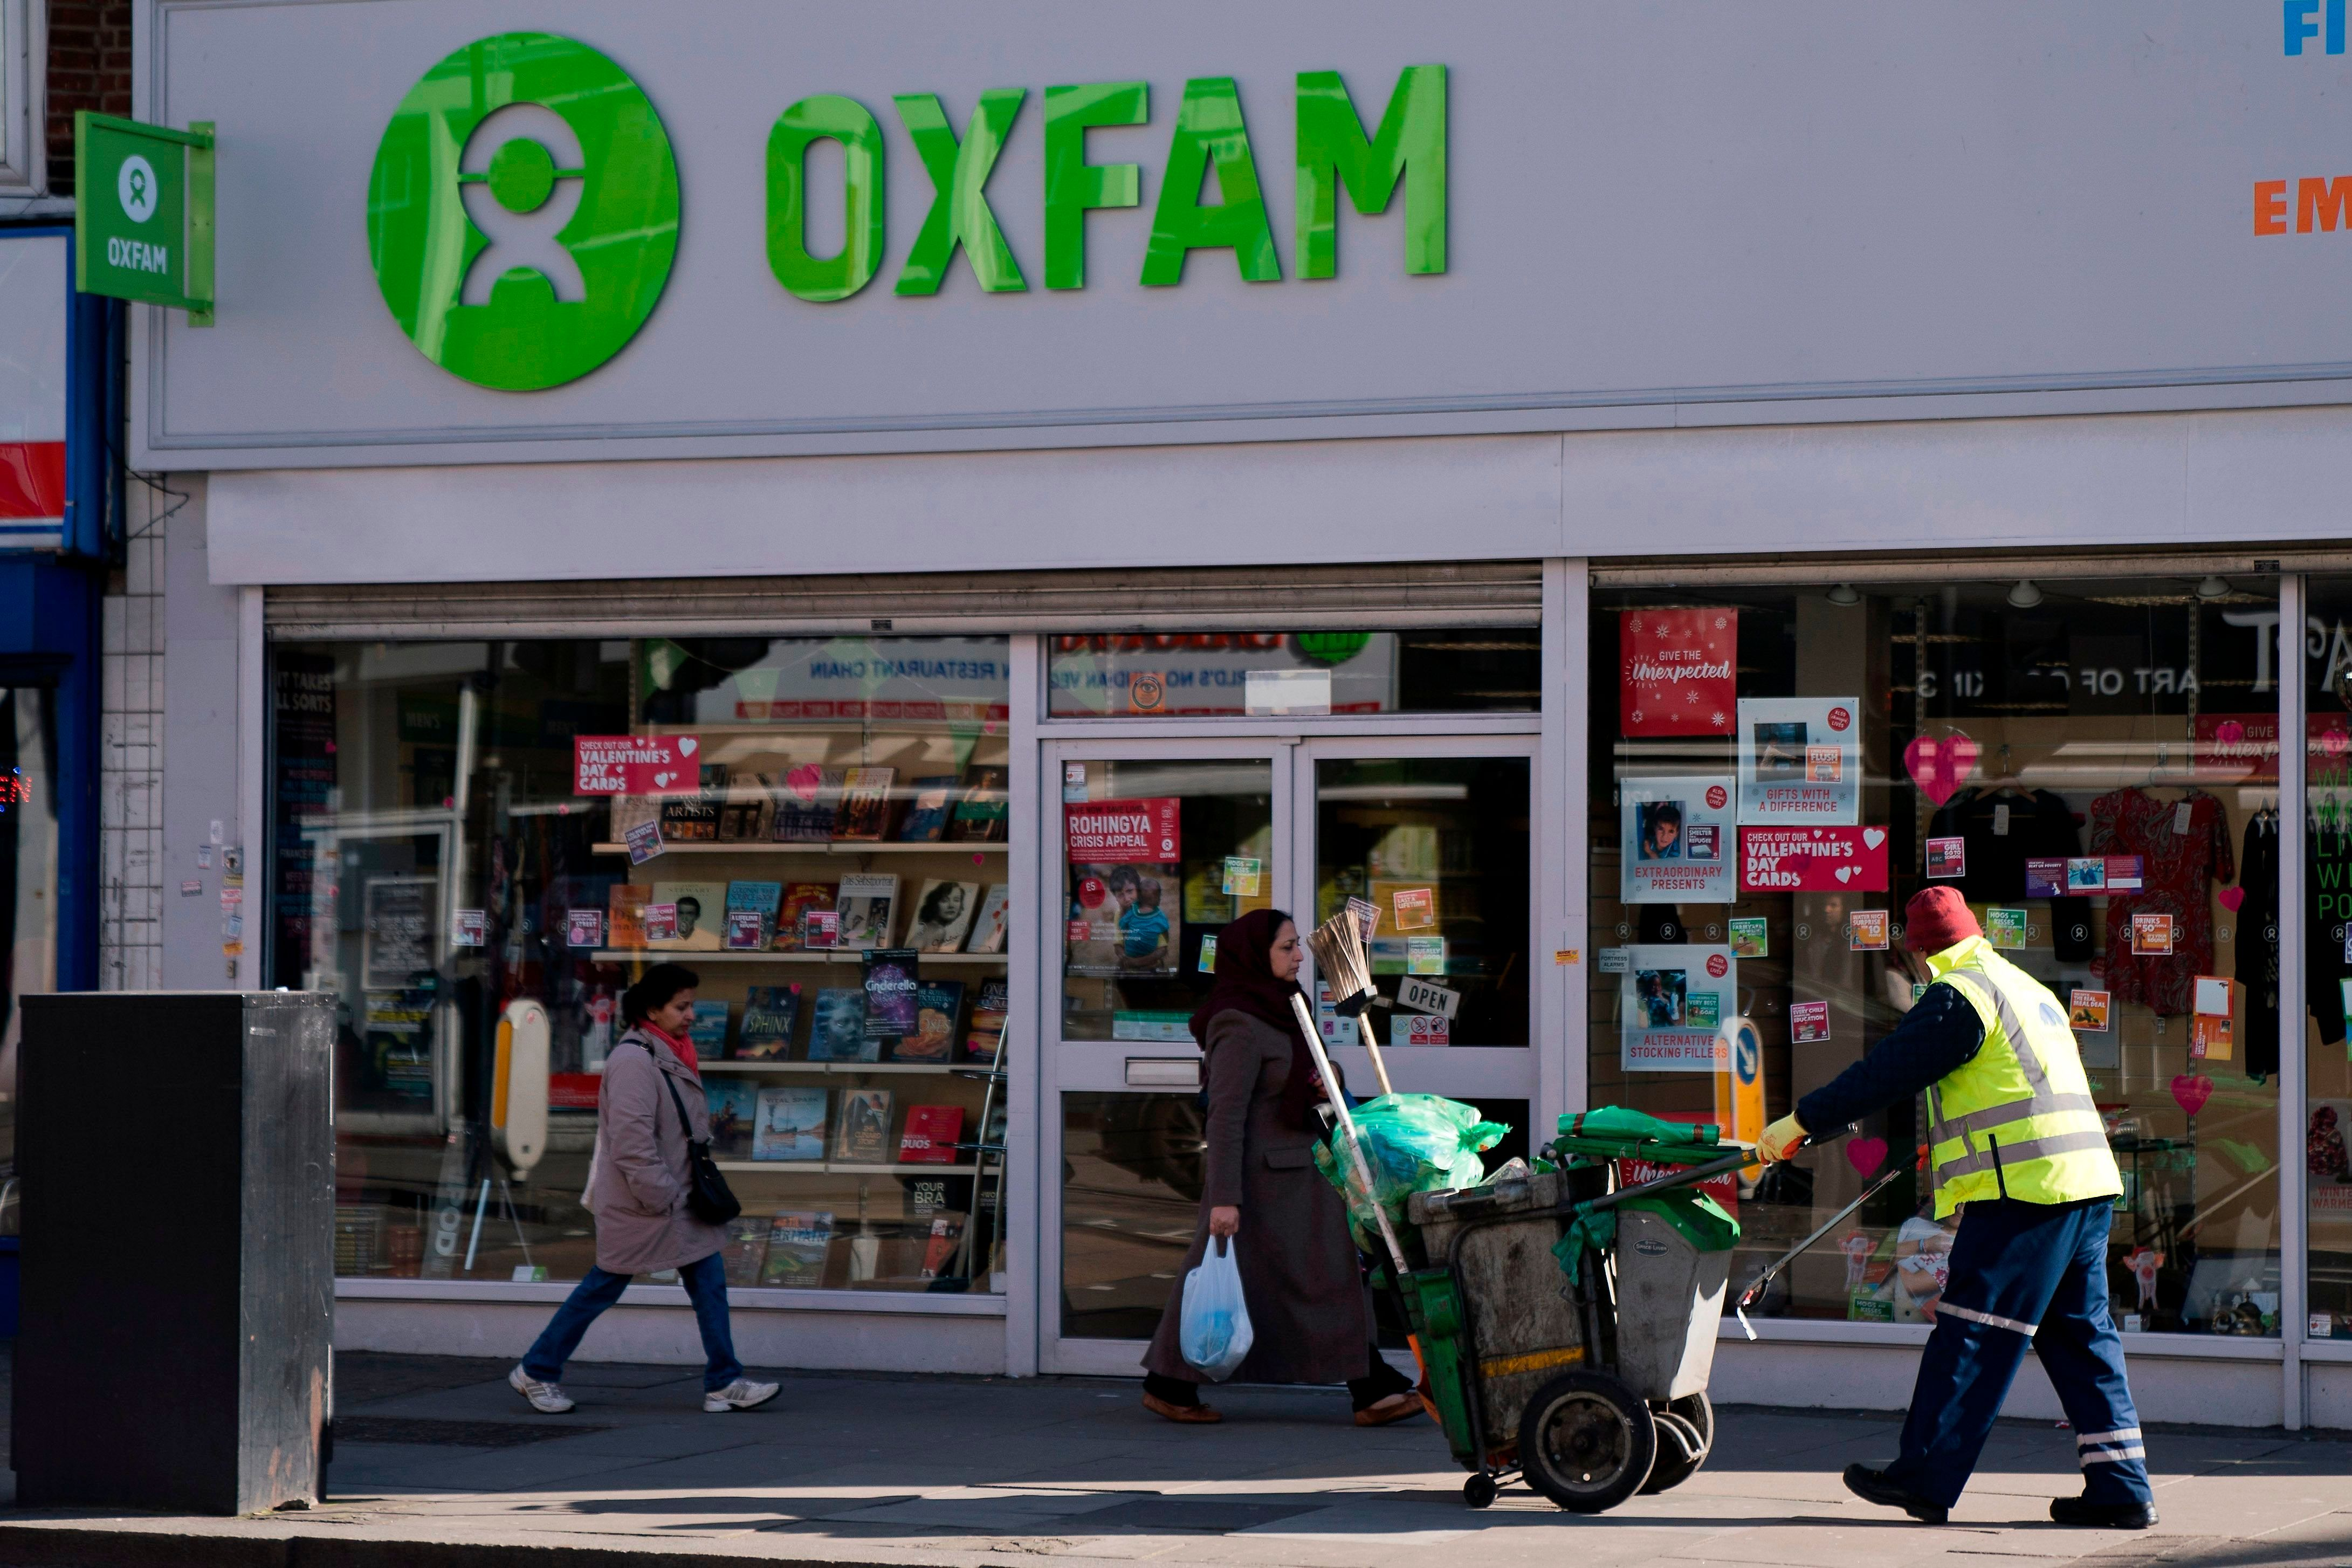 Internal Oxfam report found suspects threatened Haiti abuse witnesses